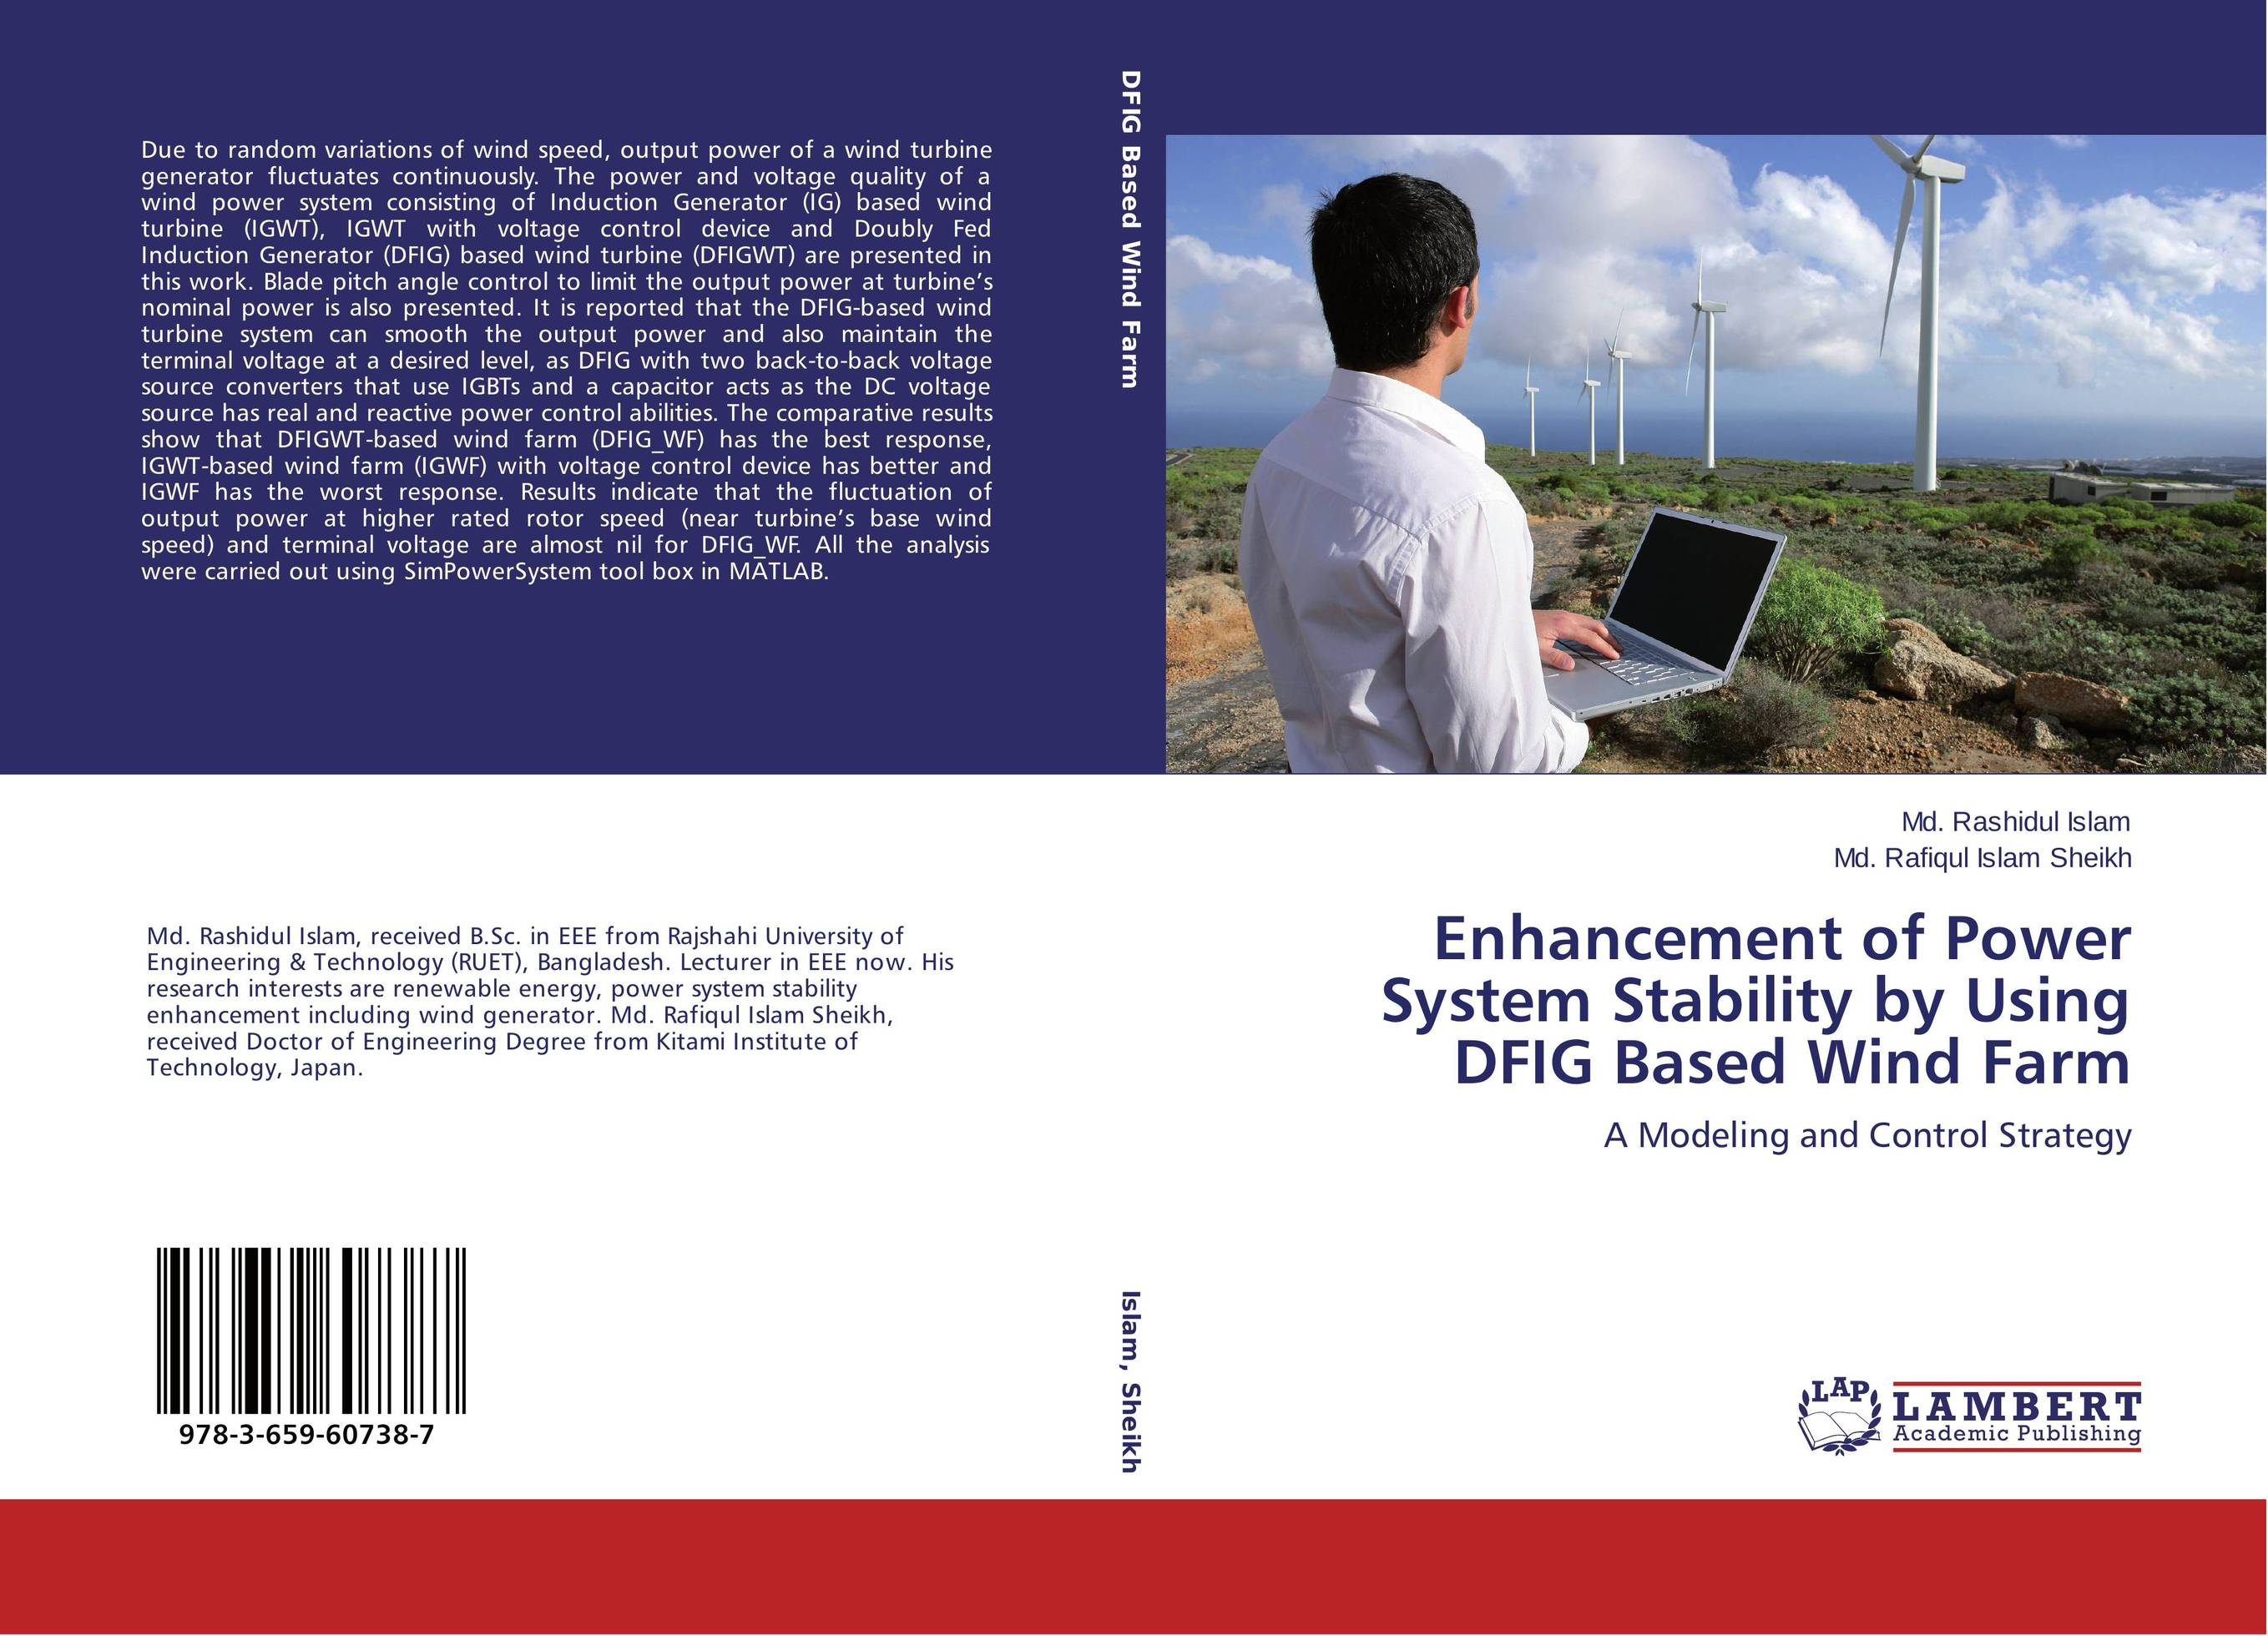 modern power system stability assessment tools Real-time stability assessment in modern power system control centers edited by savu c savulescu a john wiley & sons, inc, publication ieee press mohamed e el-hawary, series editor.